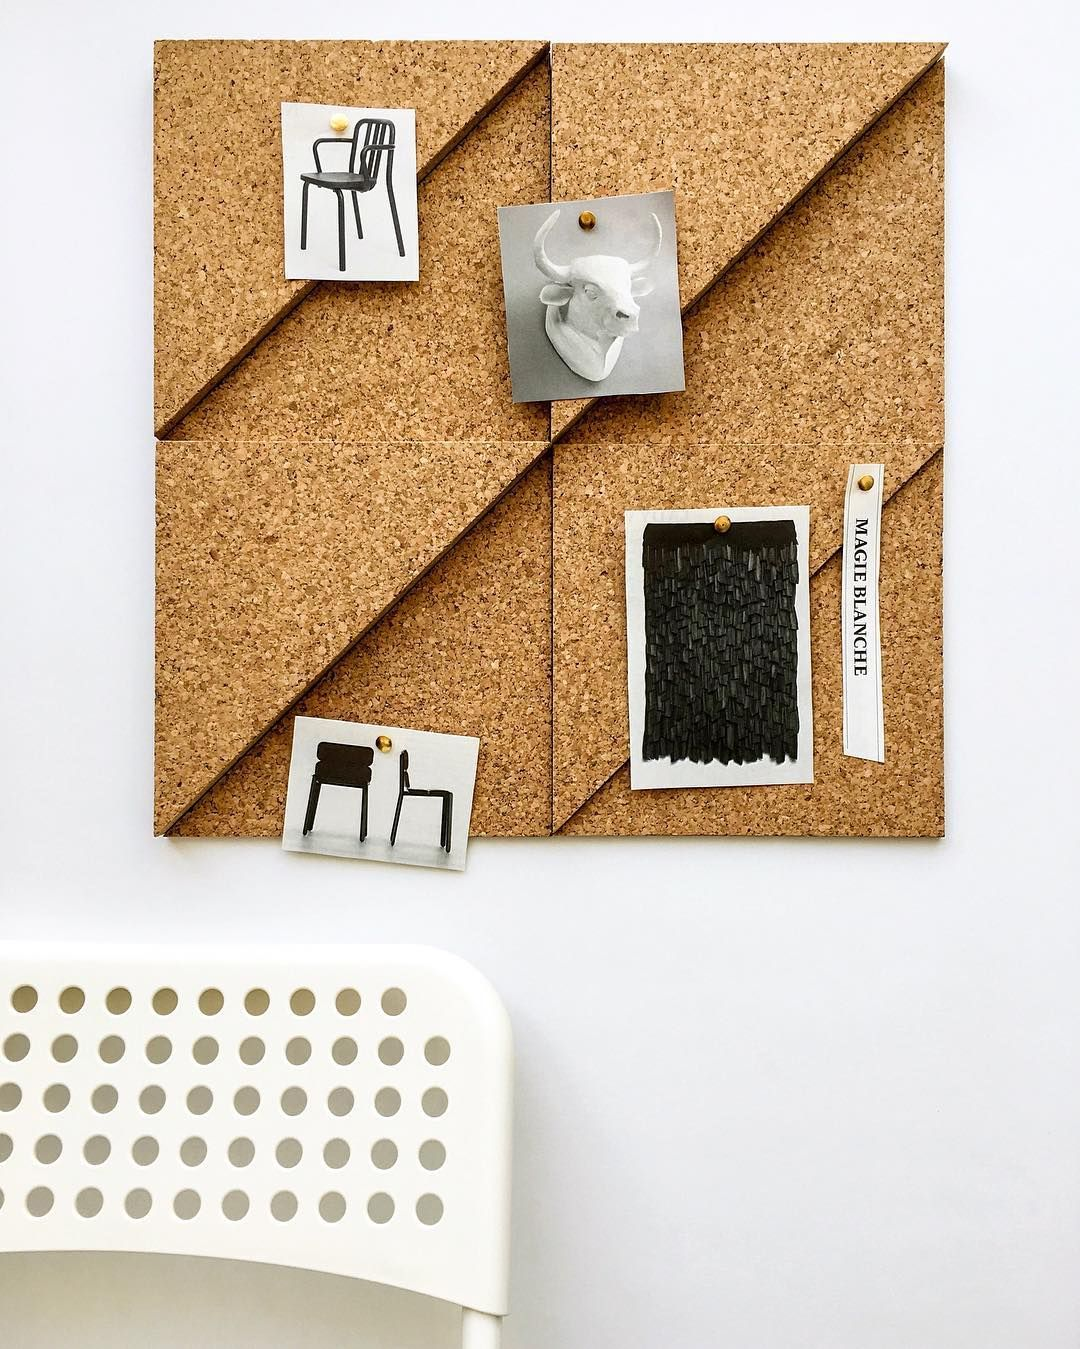 Feeling geometric with new shapes in our modular cork tiles. Get all the details at CasaCubista.com  #madeinportugal #craft #moderncraft #noticeboard #corkboard #cork #kork #geometric #modern #minimal #liège #moodboard #instadeco #instadecor #organization #etsy #etsyseller #olhao #olhão #algarve #casacubista casa cubista